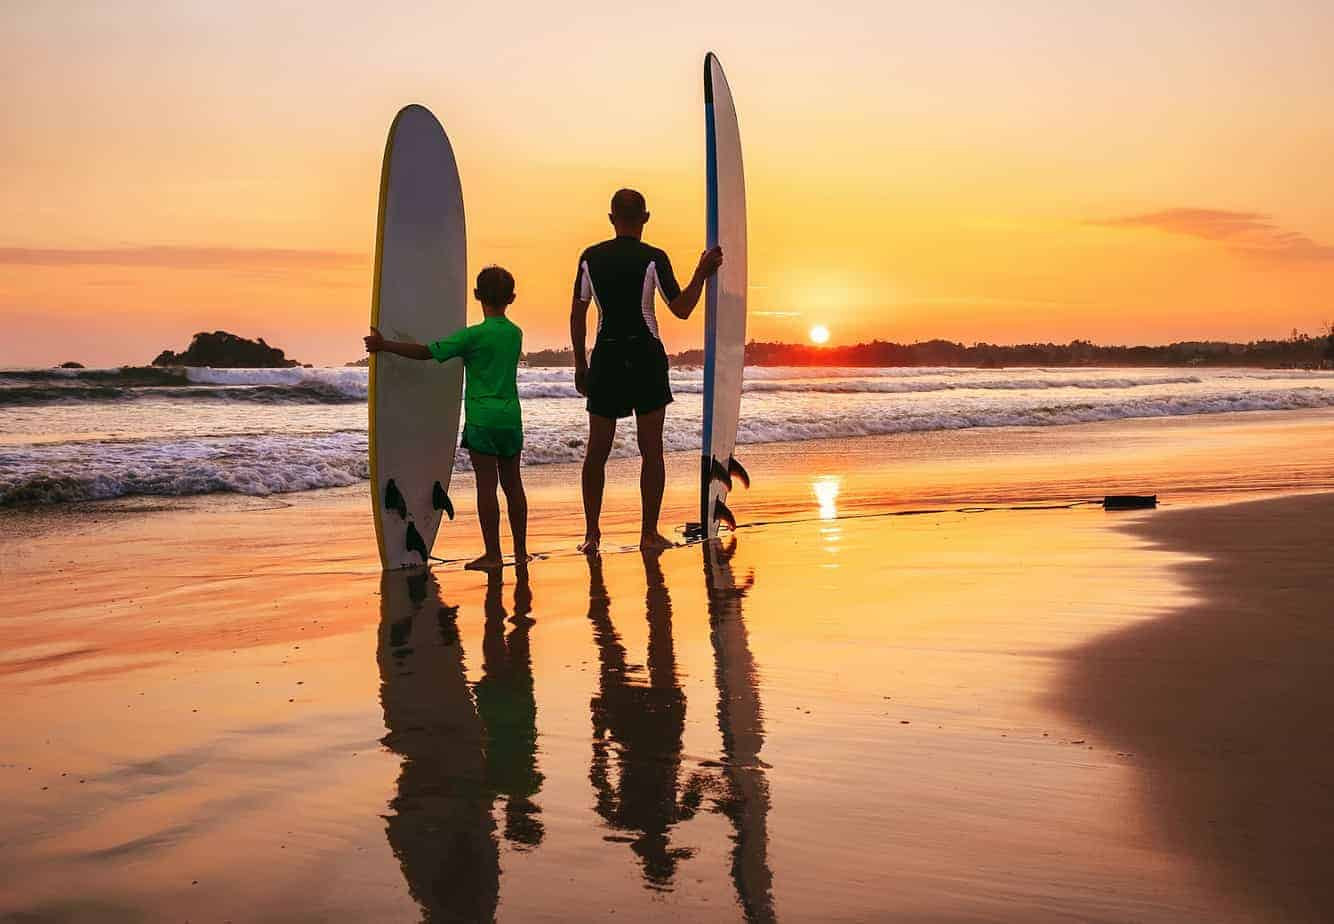 sunset-surfing-family-vacations